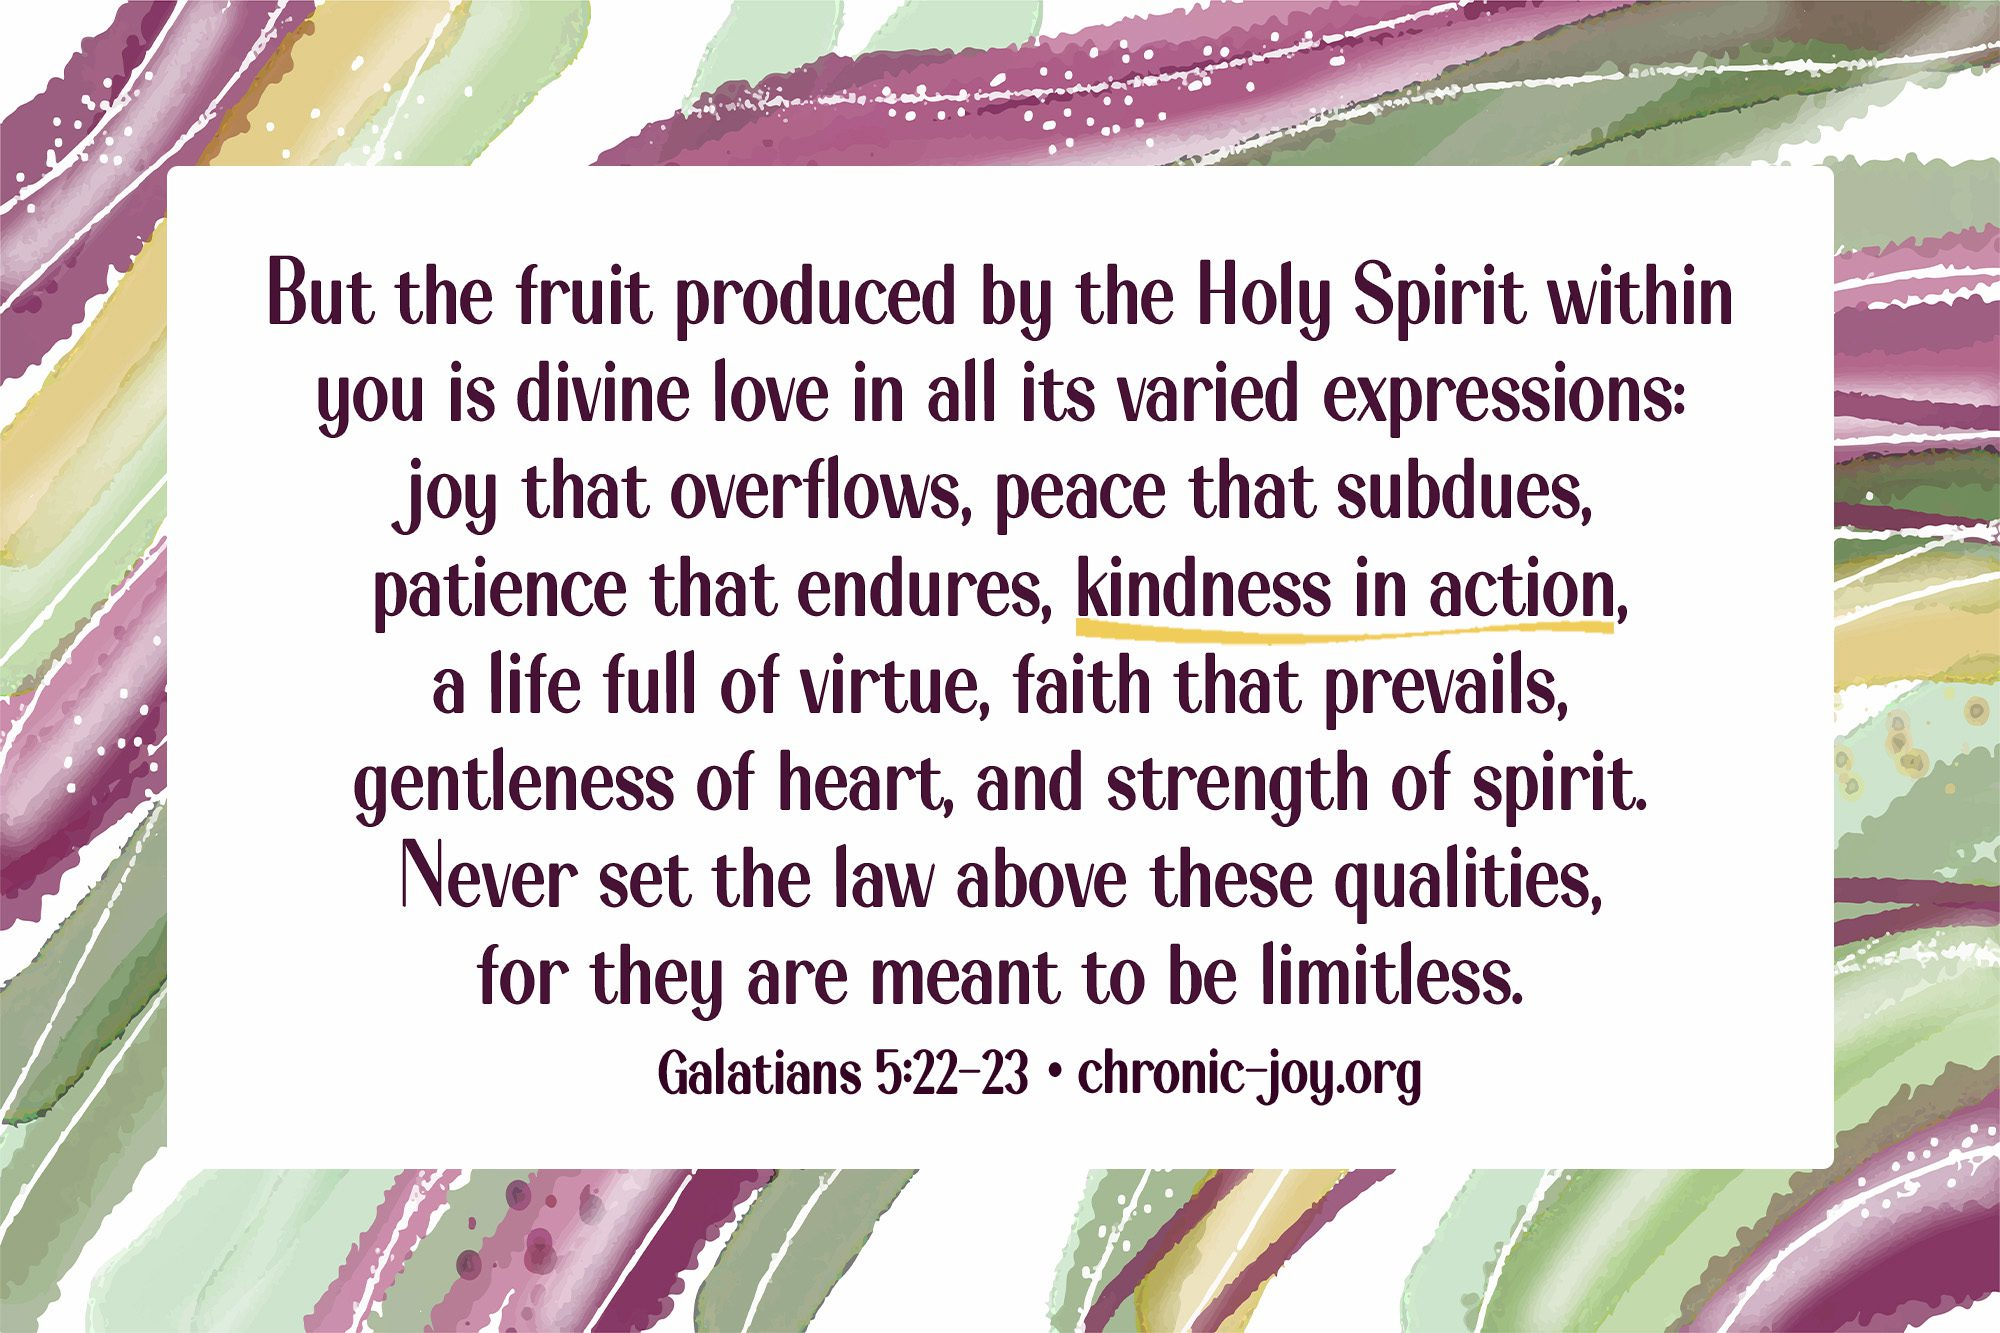 """""""But the fruit produced by the Holy Spirit within you is divine love in all its varied expressions: joy that overflows, peace that subdues, patience that endures, kindness in action, a life full of virtue, faith that prevails, gentleness of heart, and strength of spirit. Never set the law above these qualities, for they are meant to be limitless."""" Galatians 5:22-23 TPT"""